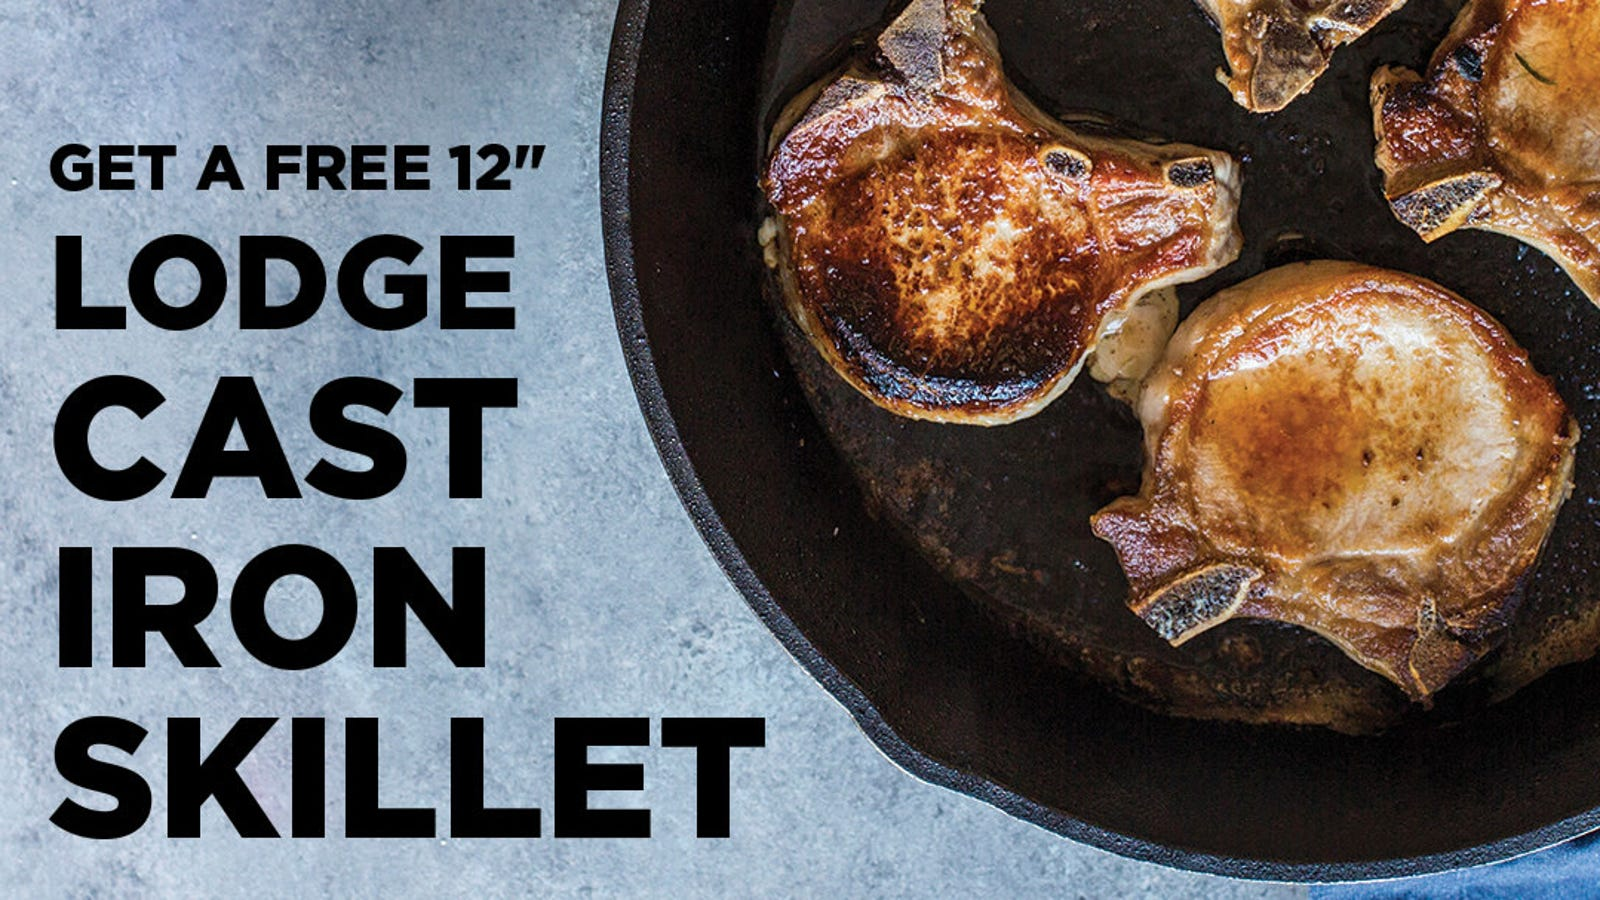 Sign Up For Butcher Box, Get $50 to Spend On Lodge's Essential Cookware